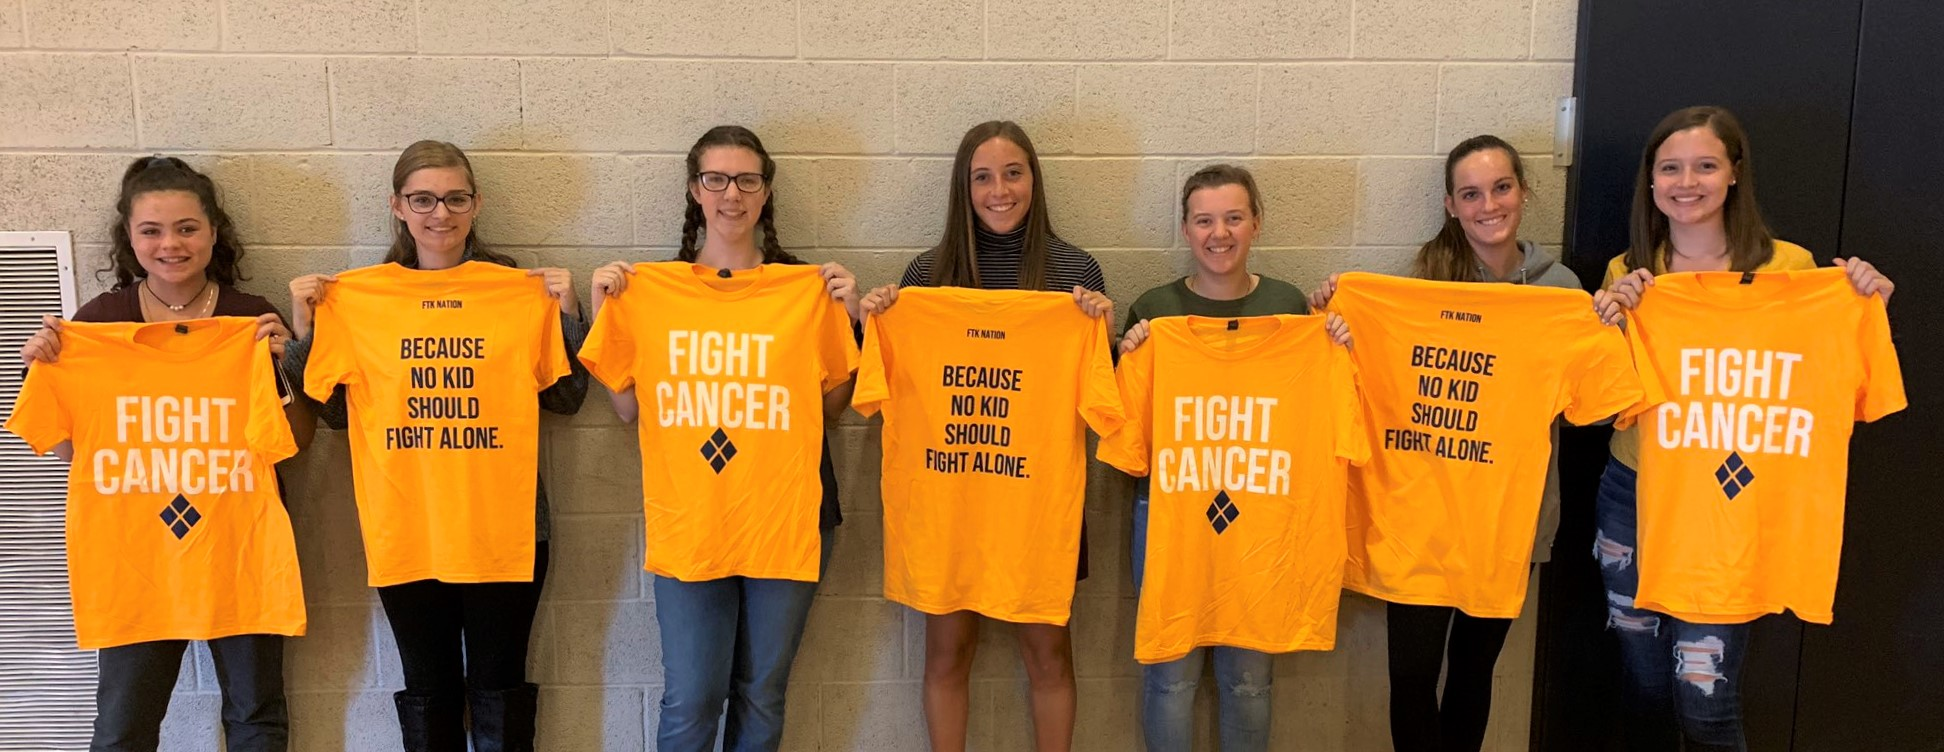 "MiniTHON T-shirts: ""FIGHT CANCER because no kid should fight alone."""